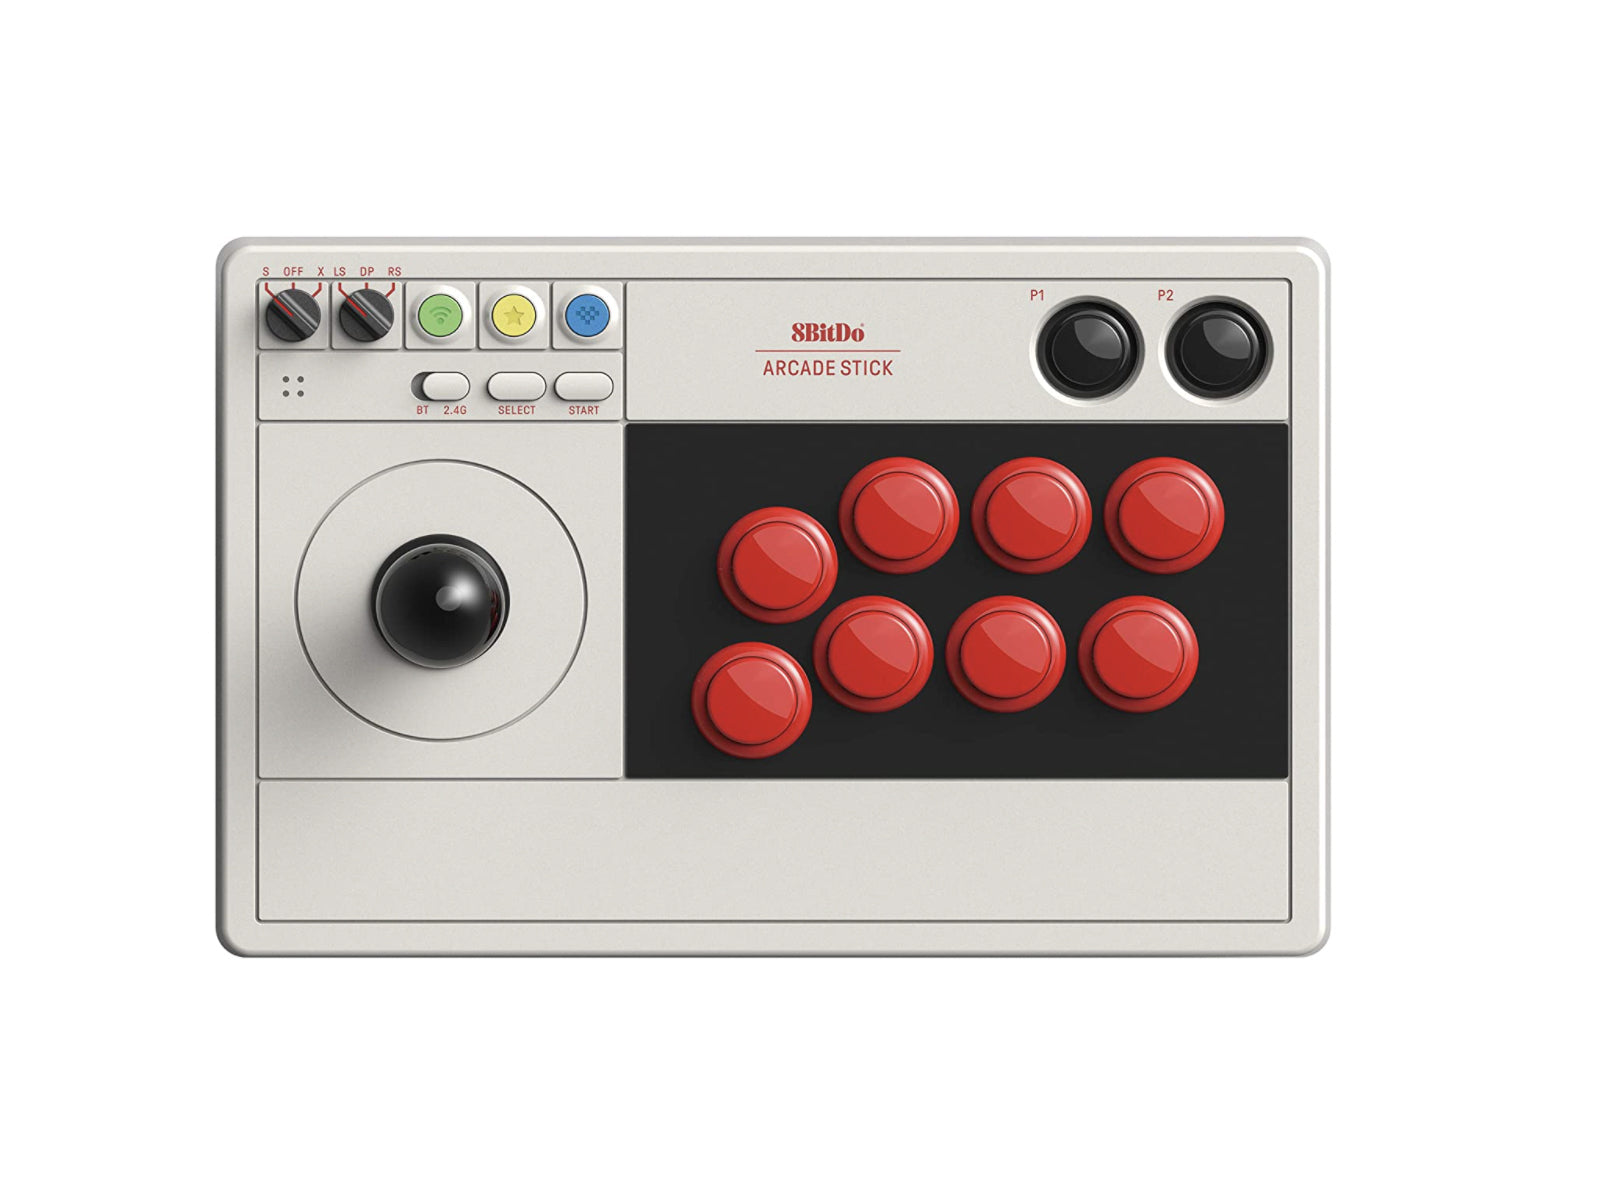 Tech Gift Ideas: Arcade Stick